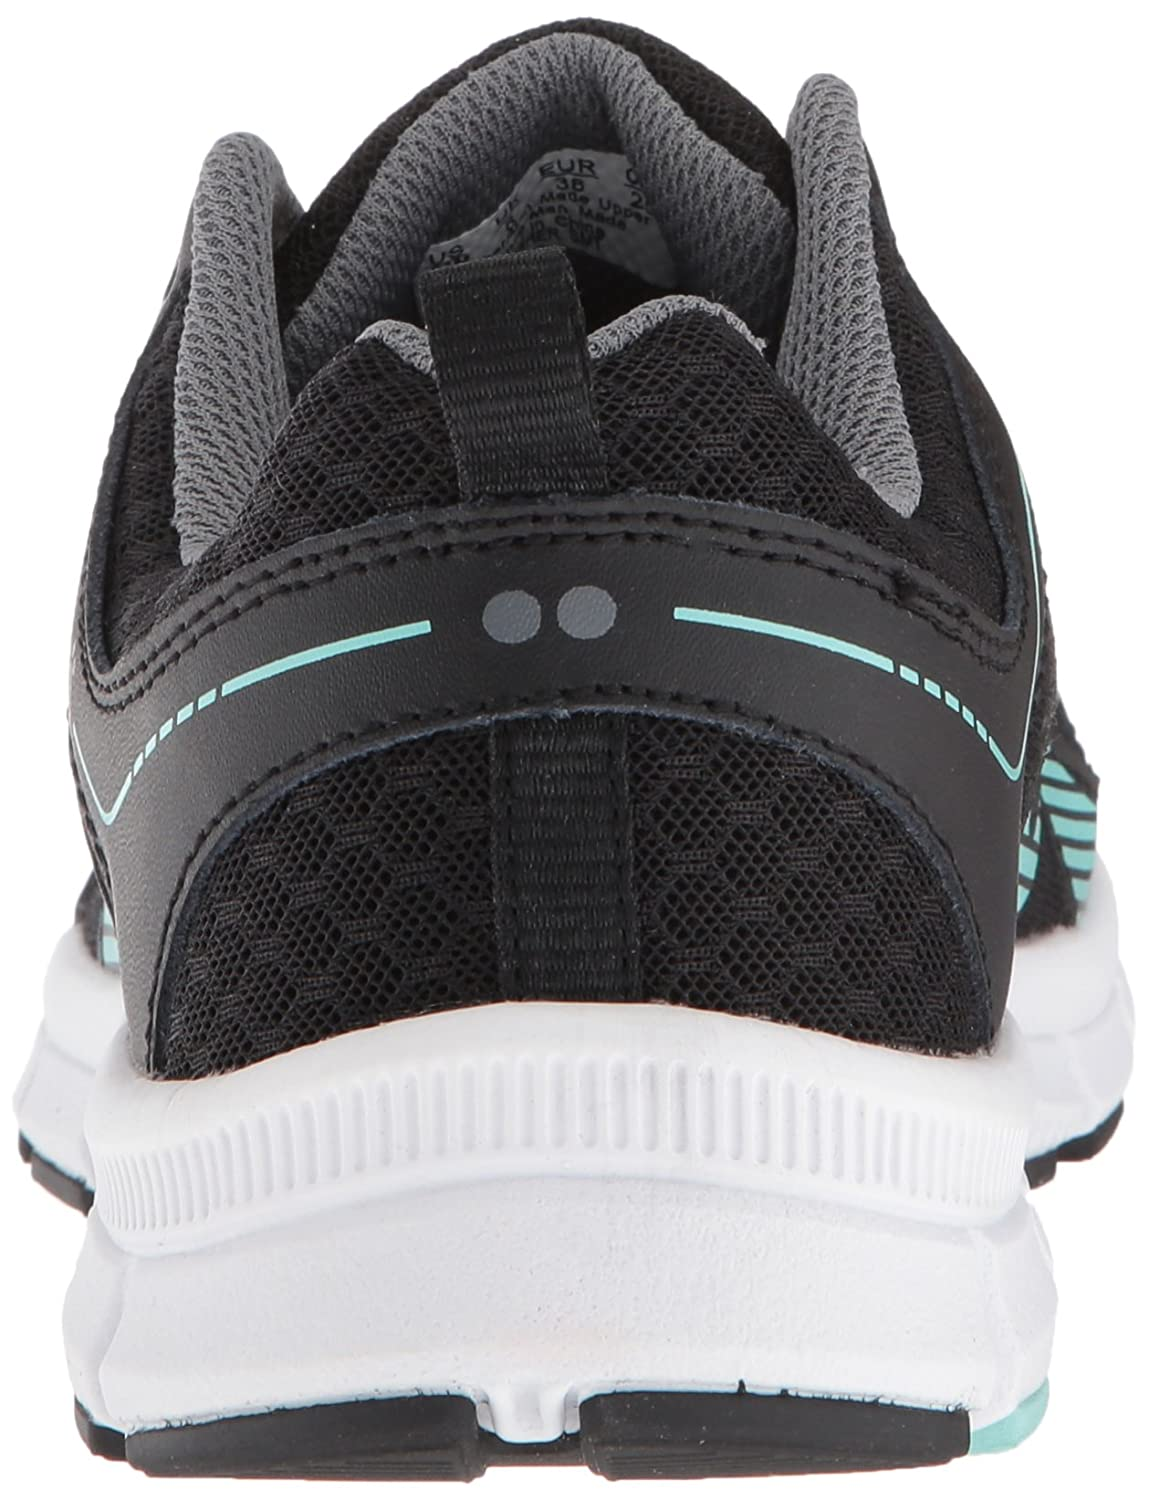 Ryka Women's Heather Cross Trainer B07C8FD96V 11 W US|Black/Mint